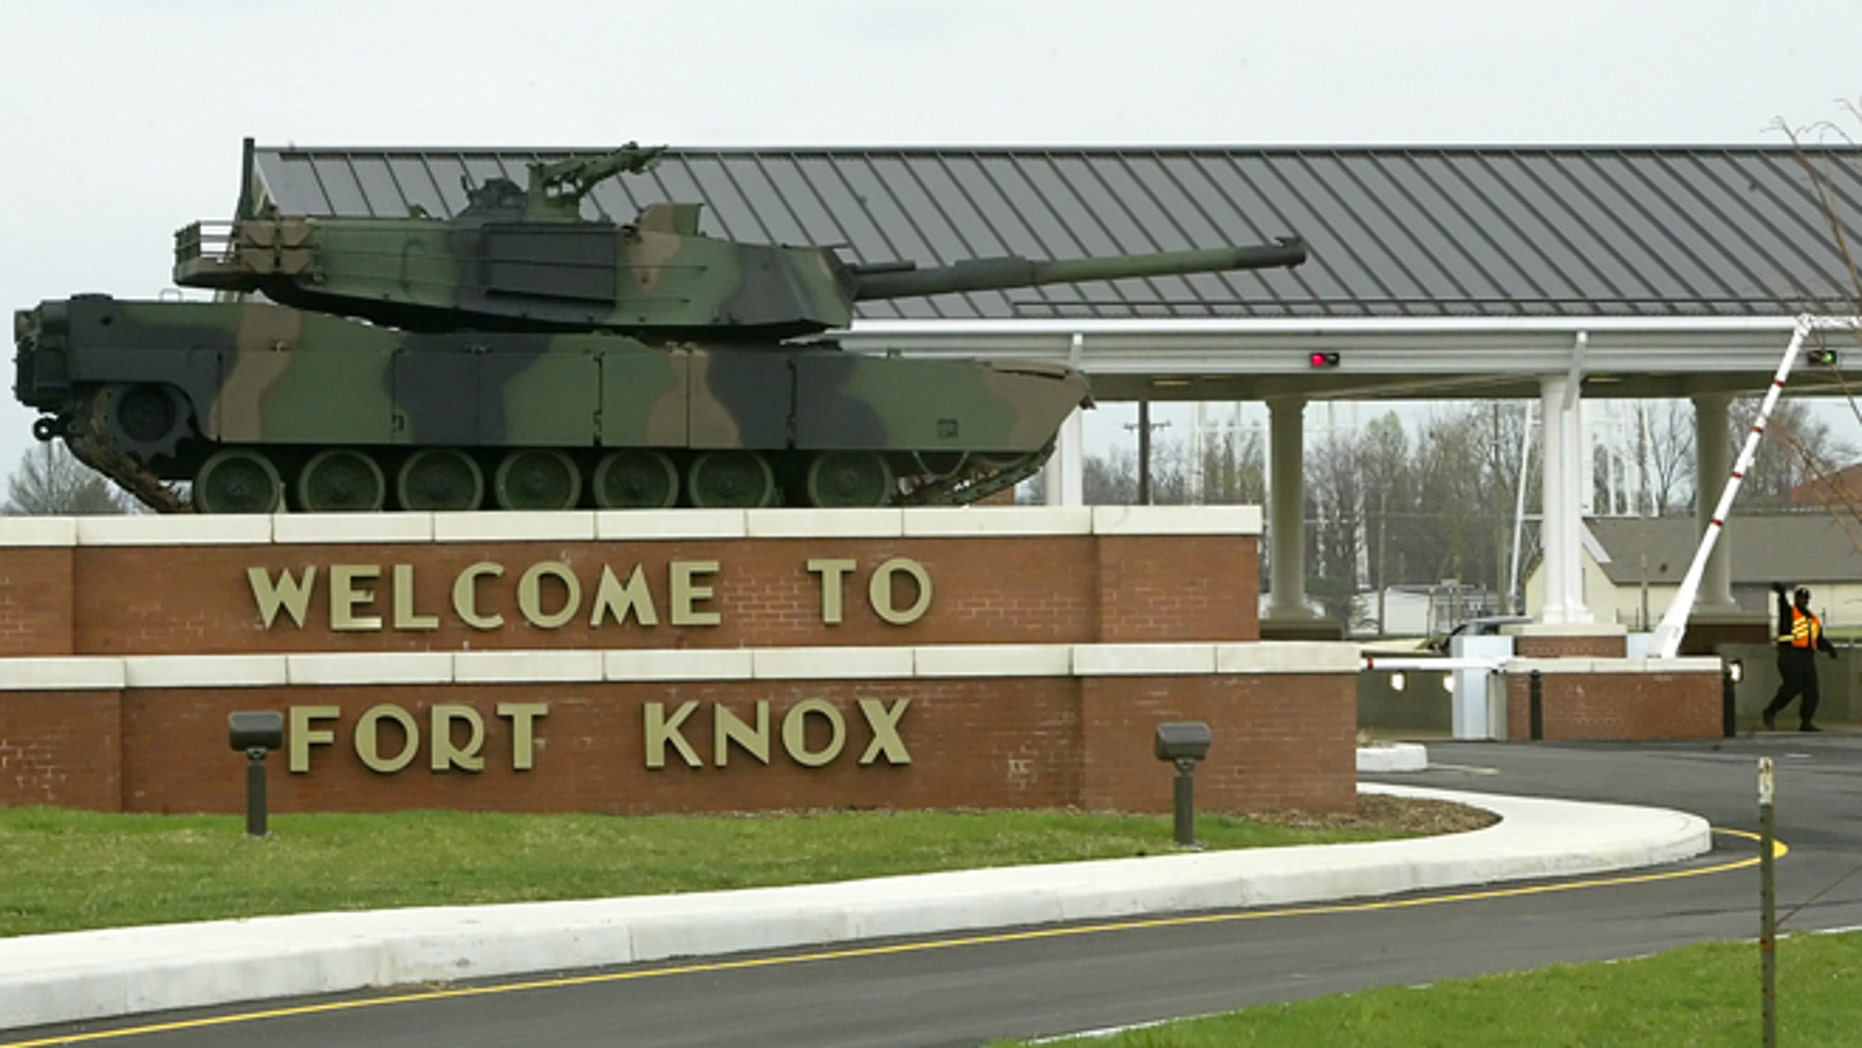 April 7, 2005: The gate to the U.S. Army Armor Center in Fort Knox, Ky.